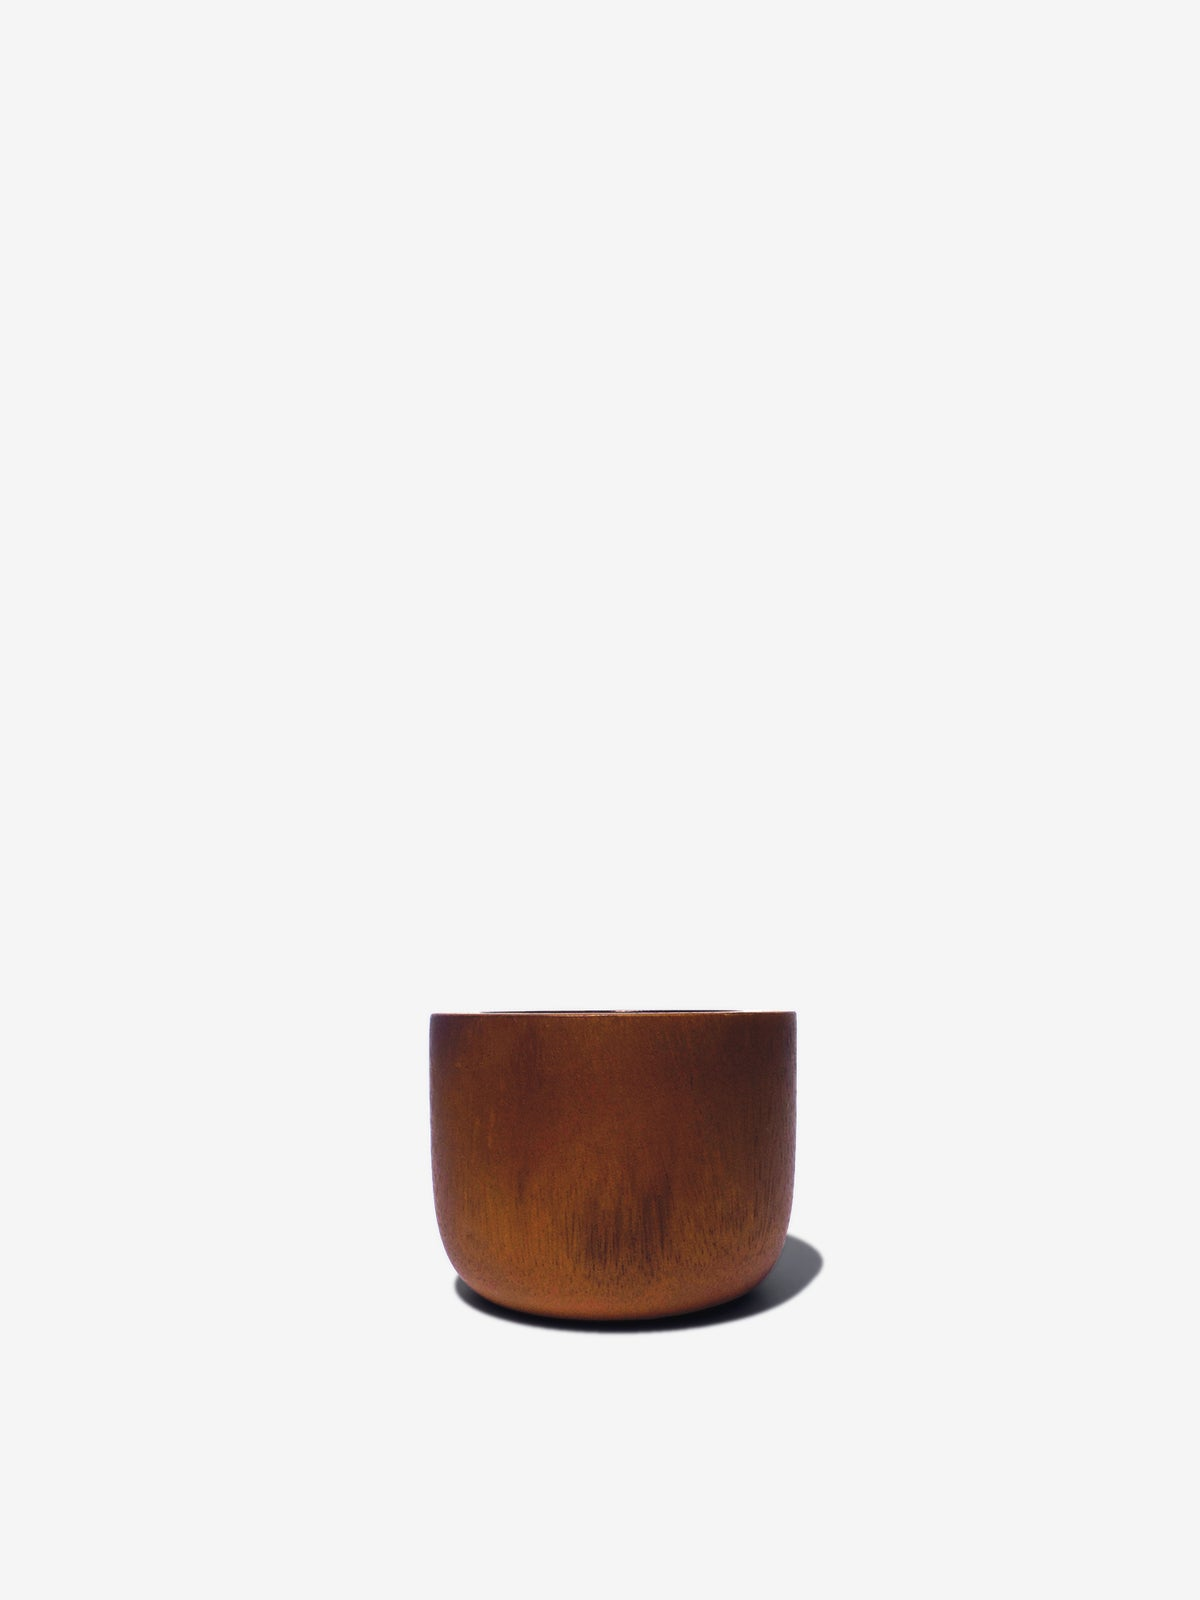 Image of Wooden Cup